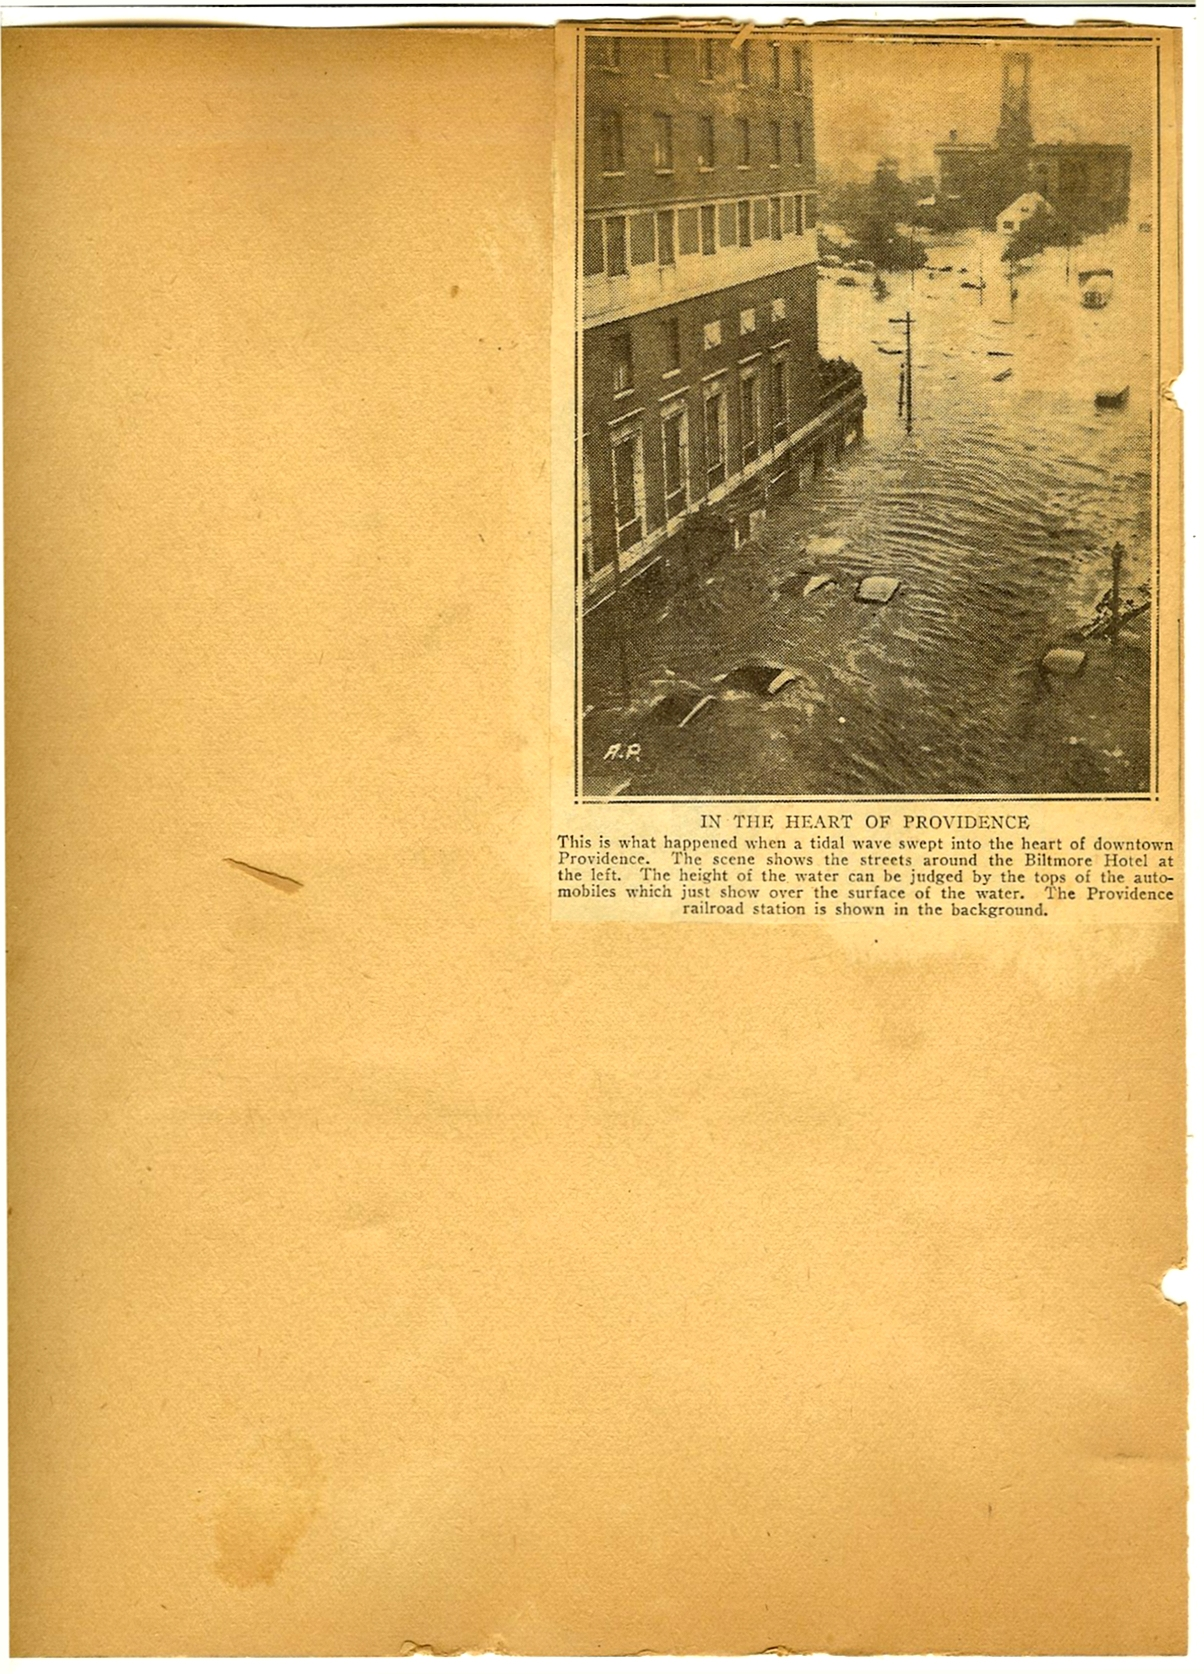 The 1938 Hurricane photos p38